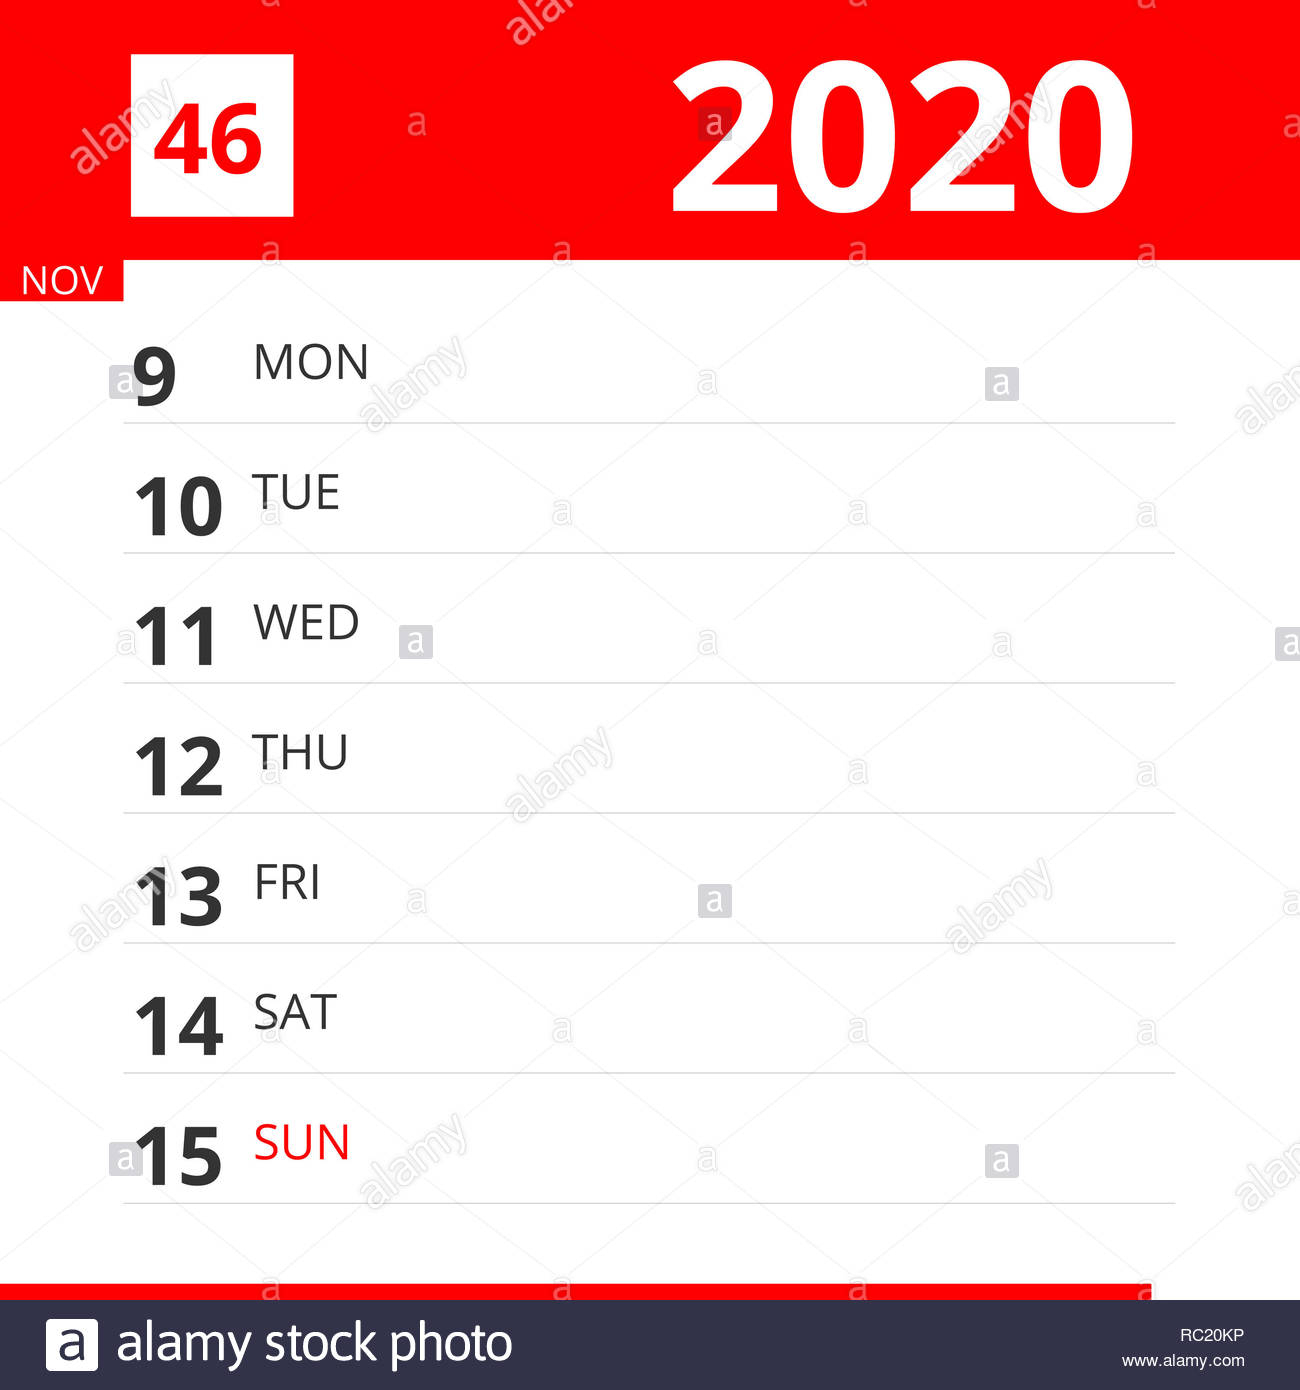 Calendar Planner For Week 46 In 2020, Ends November 15, 2020